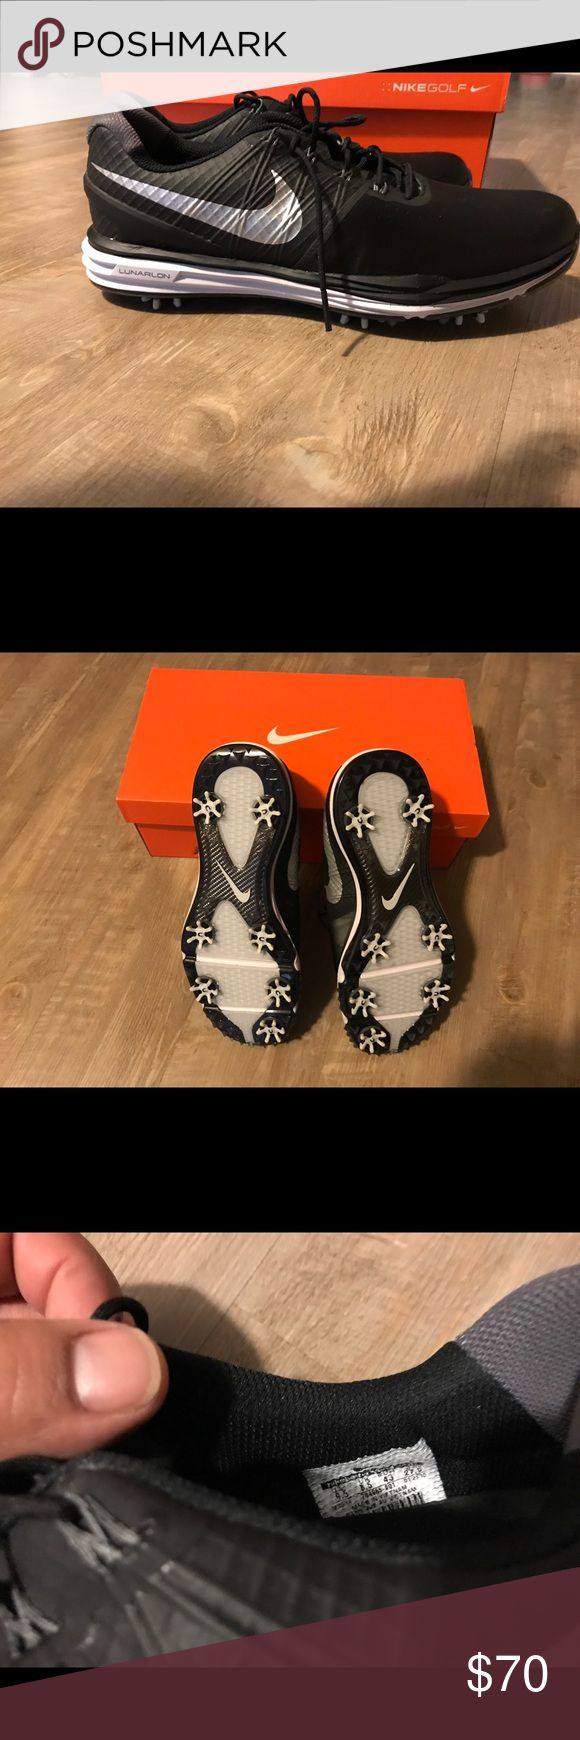 Nike lunar control 4 | size 9.5 | NEW Never Worn | New | Nike lunar control 4 | size 9.5 | replaceable spikes Nike Shoes Athletic Shoes